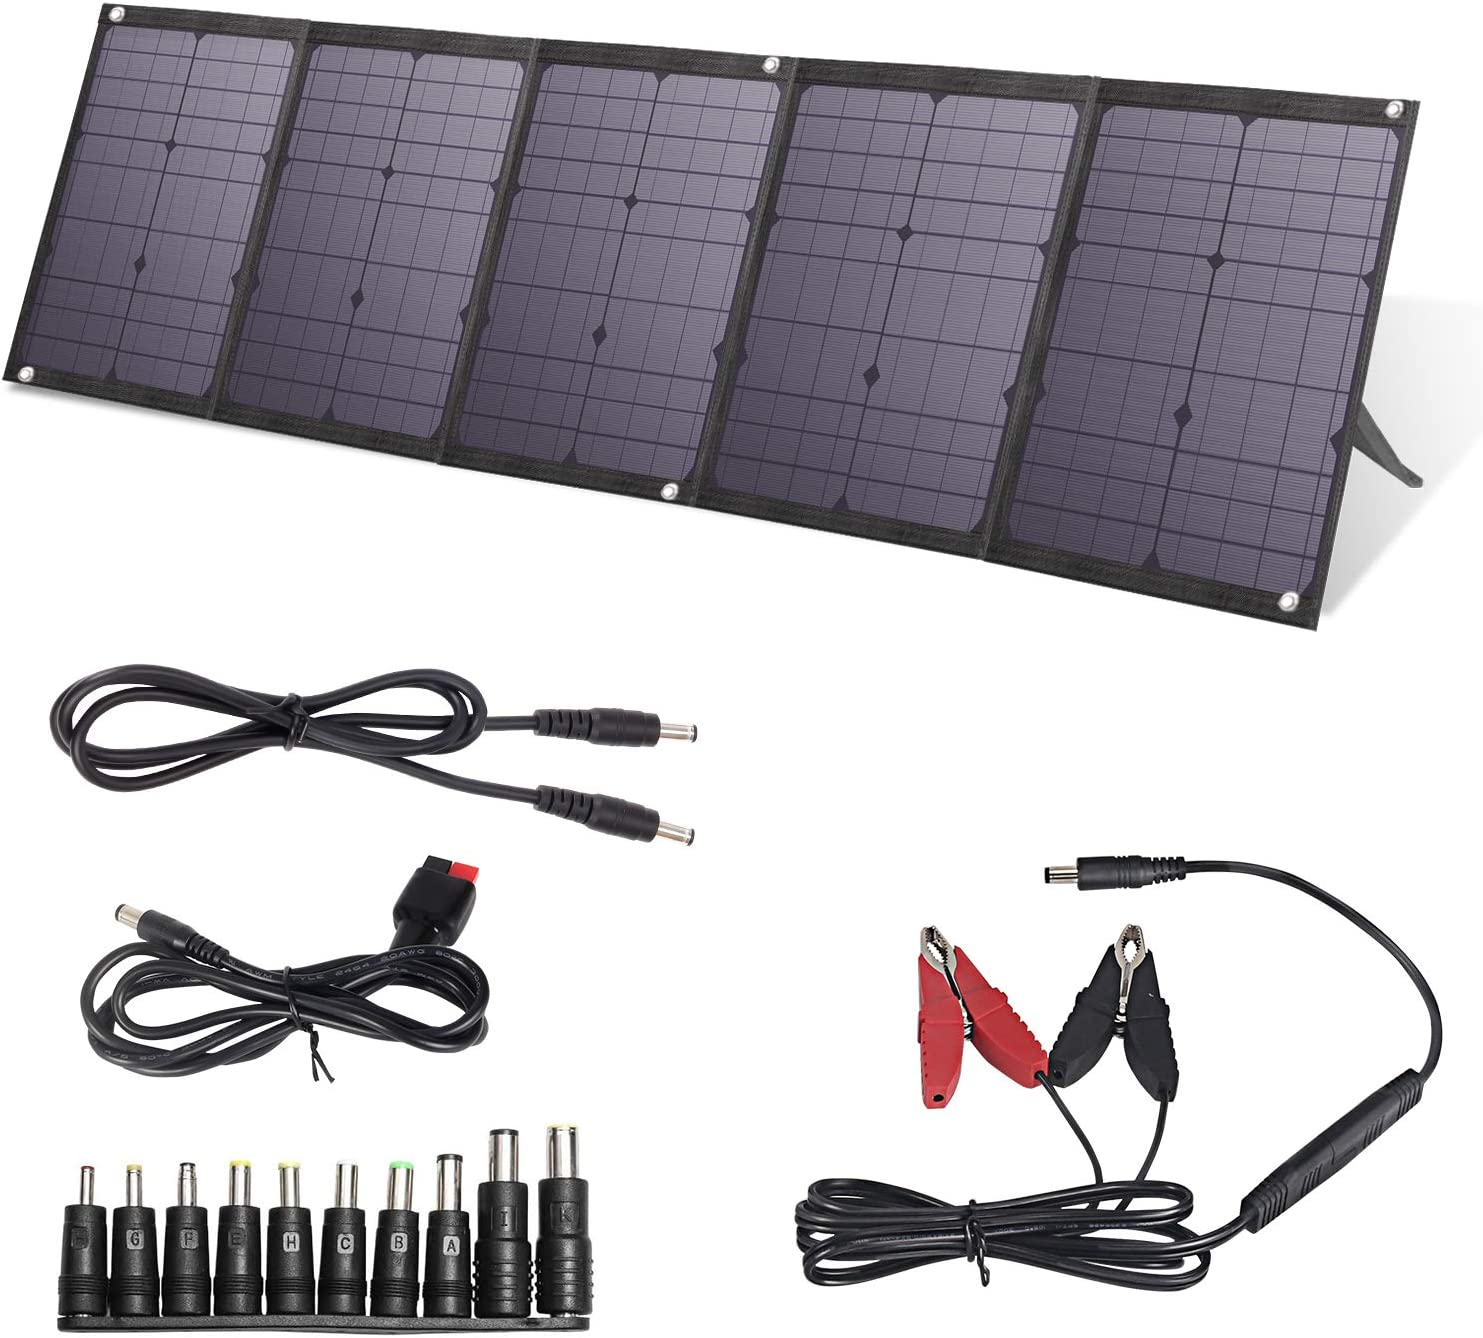 BigBlue 100W Portable Solar Panels Kit with PD Type C, Dual USB Ports(Fast Charging) and 18V DC Output, Solar Phone Charger for Power Station, iPhone, iPad, Some Laptops, Camera, GPS etc.